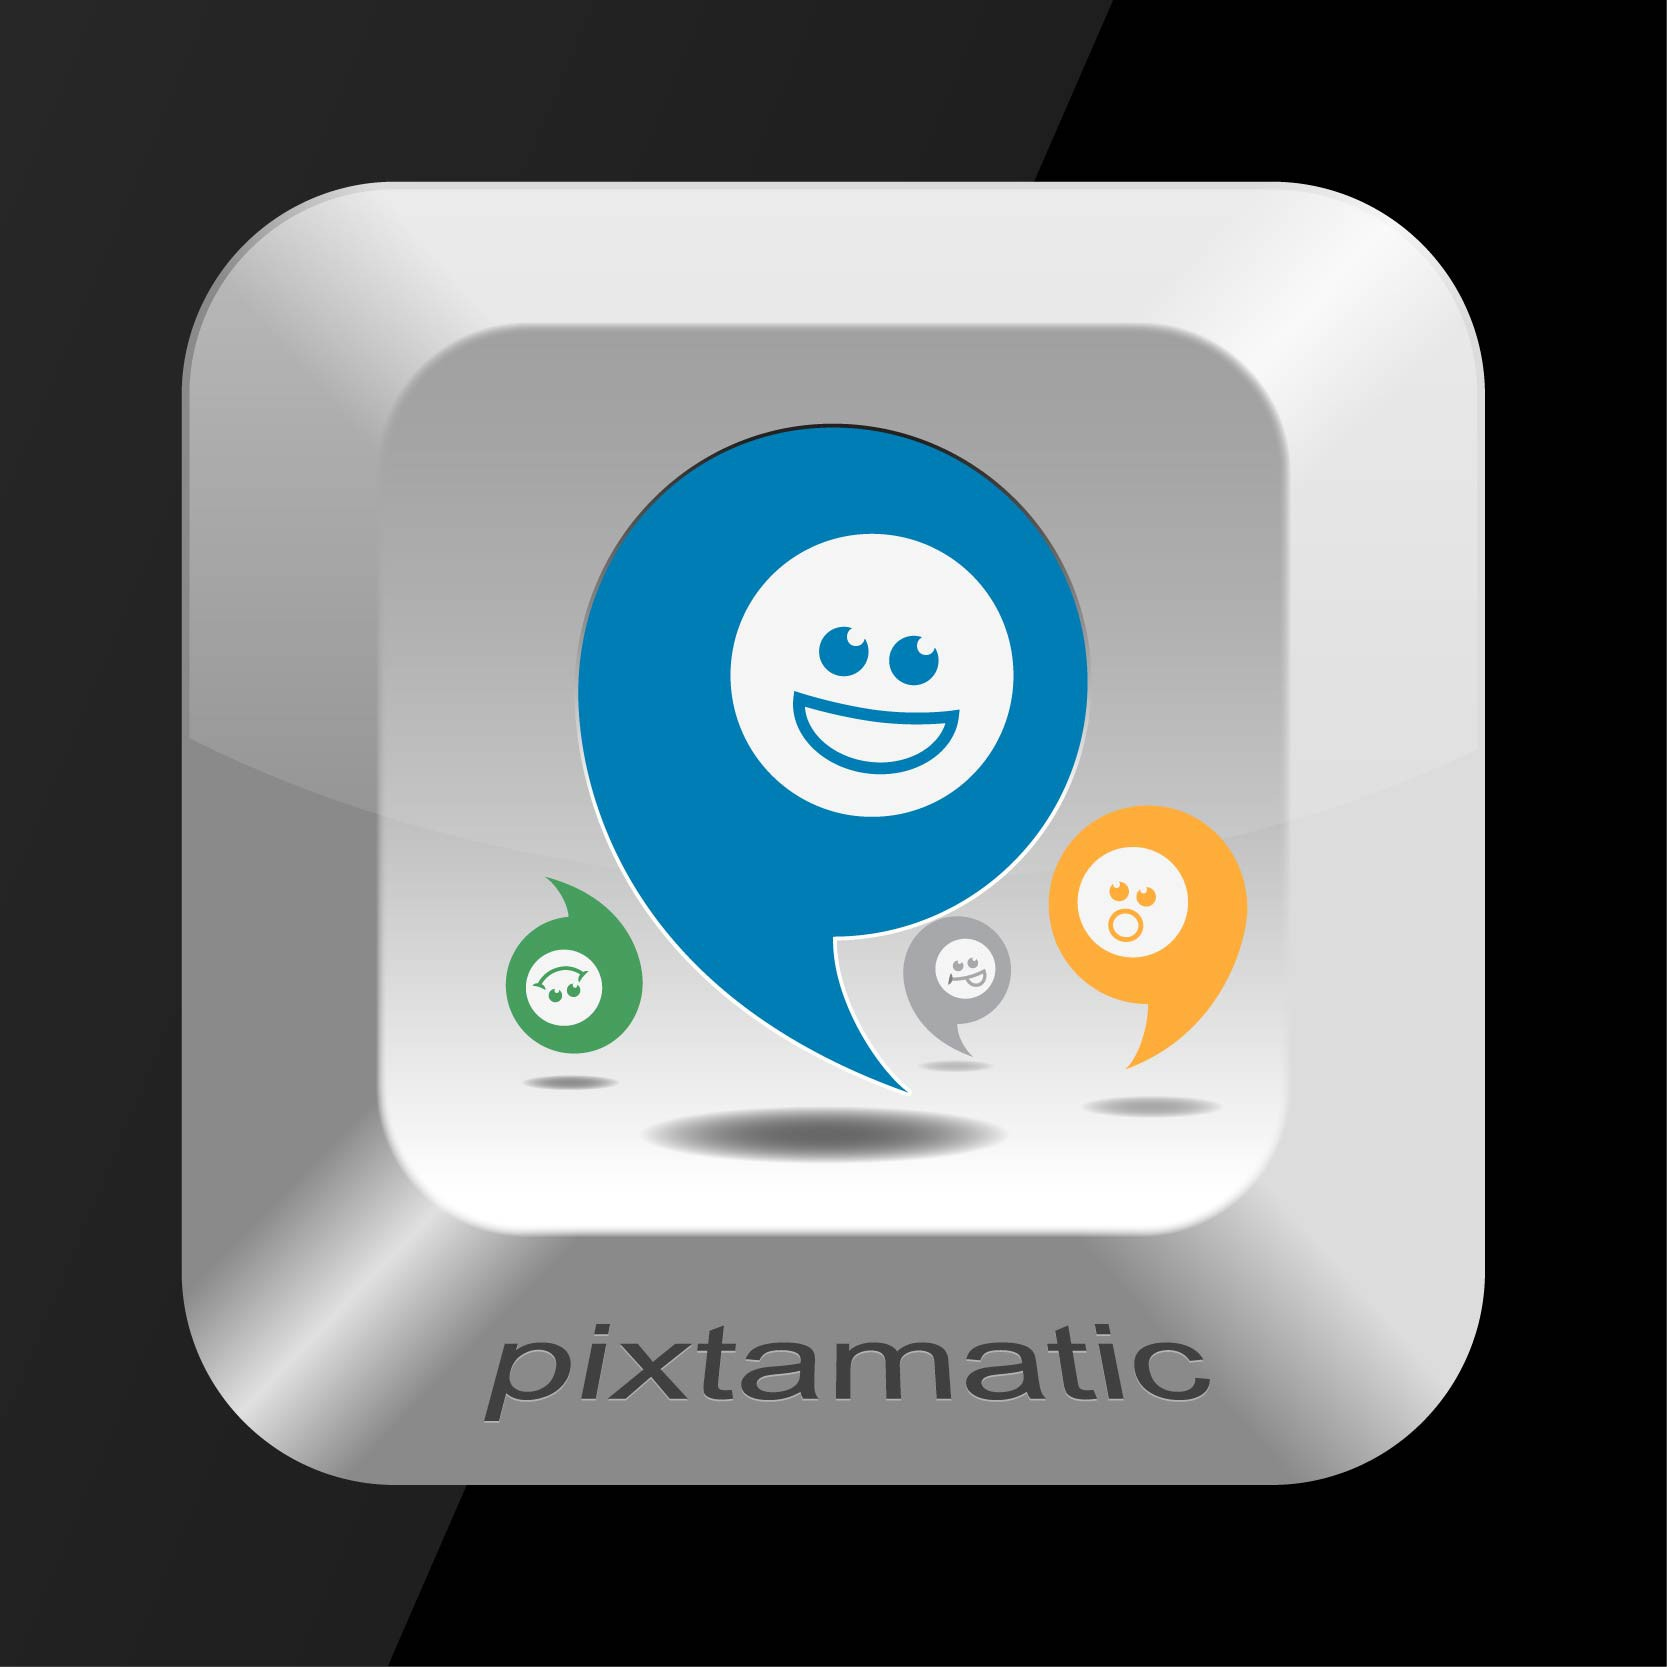 Create the next icon or button design for Pixtamatic from Triple Dog Dare Studios